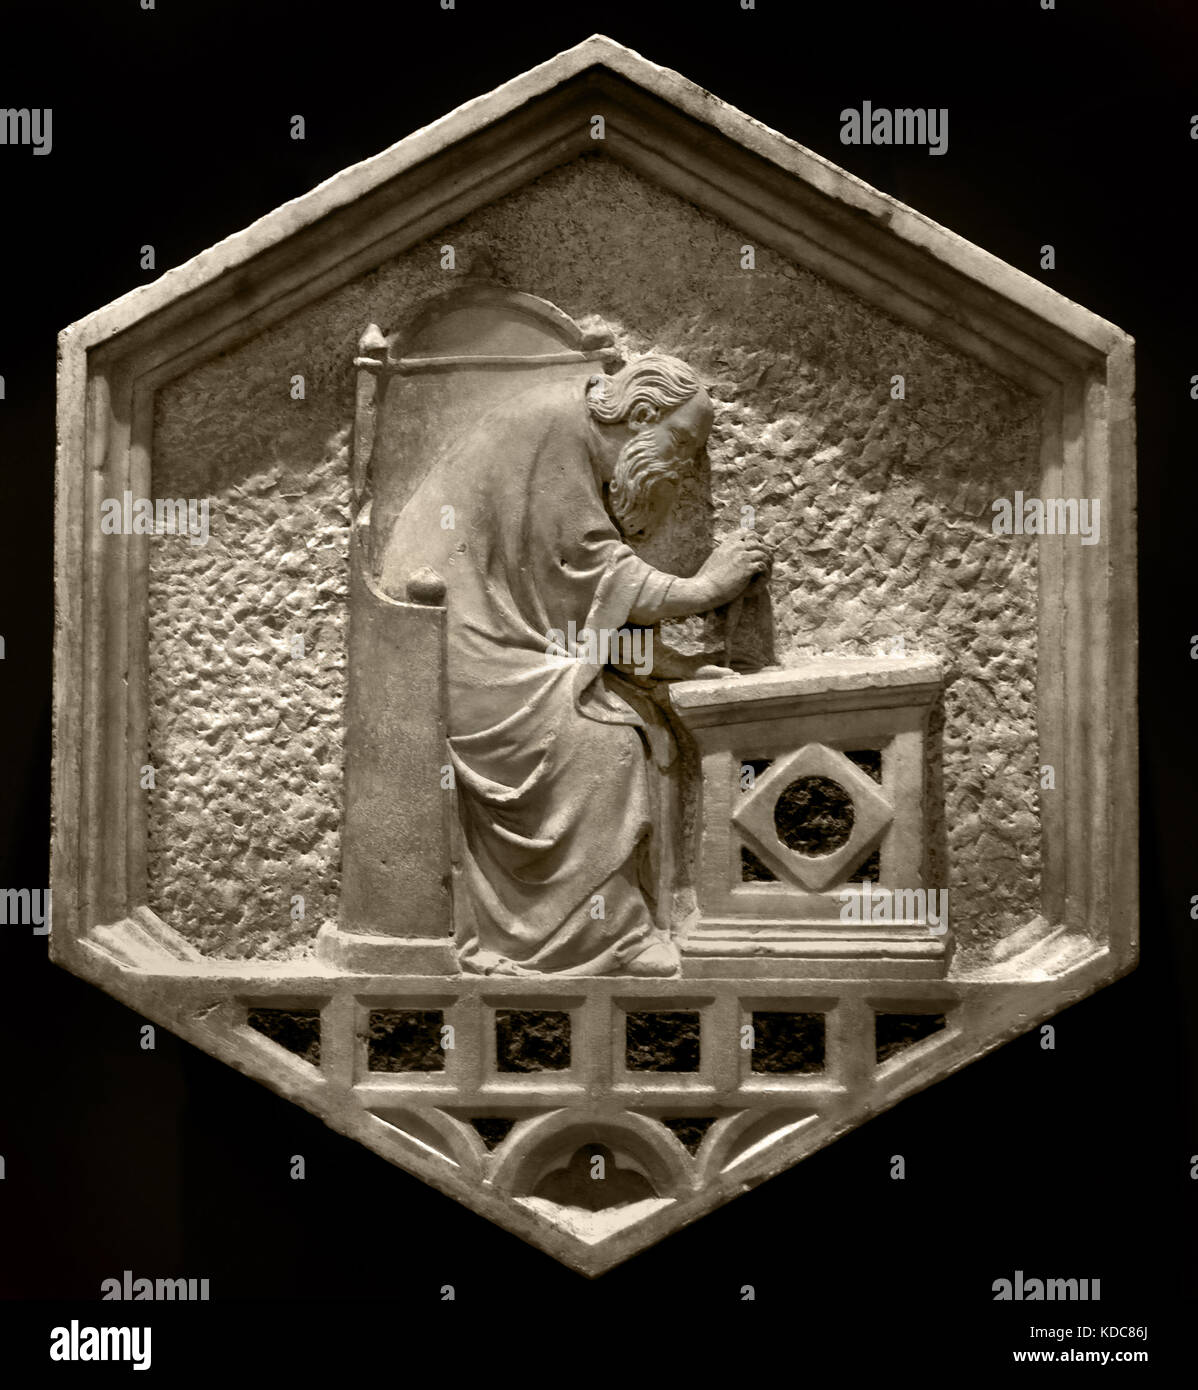 Euclid as Architecture: Pisano 1290 – 1348 is sculptor architect and Workshop began about 1336 with the reliefs - Stock Image